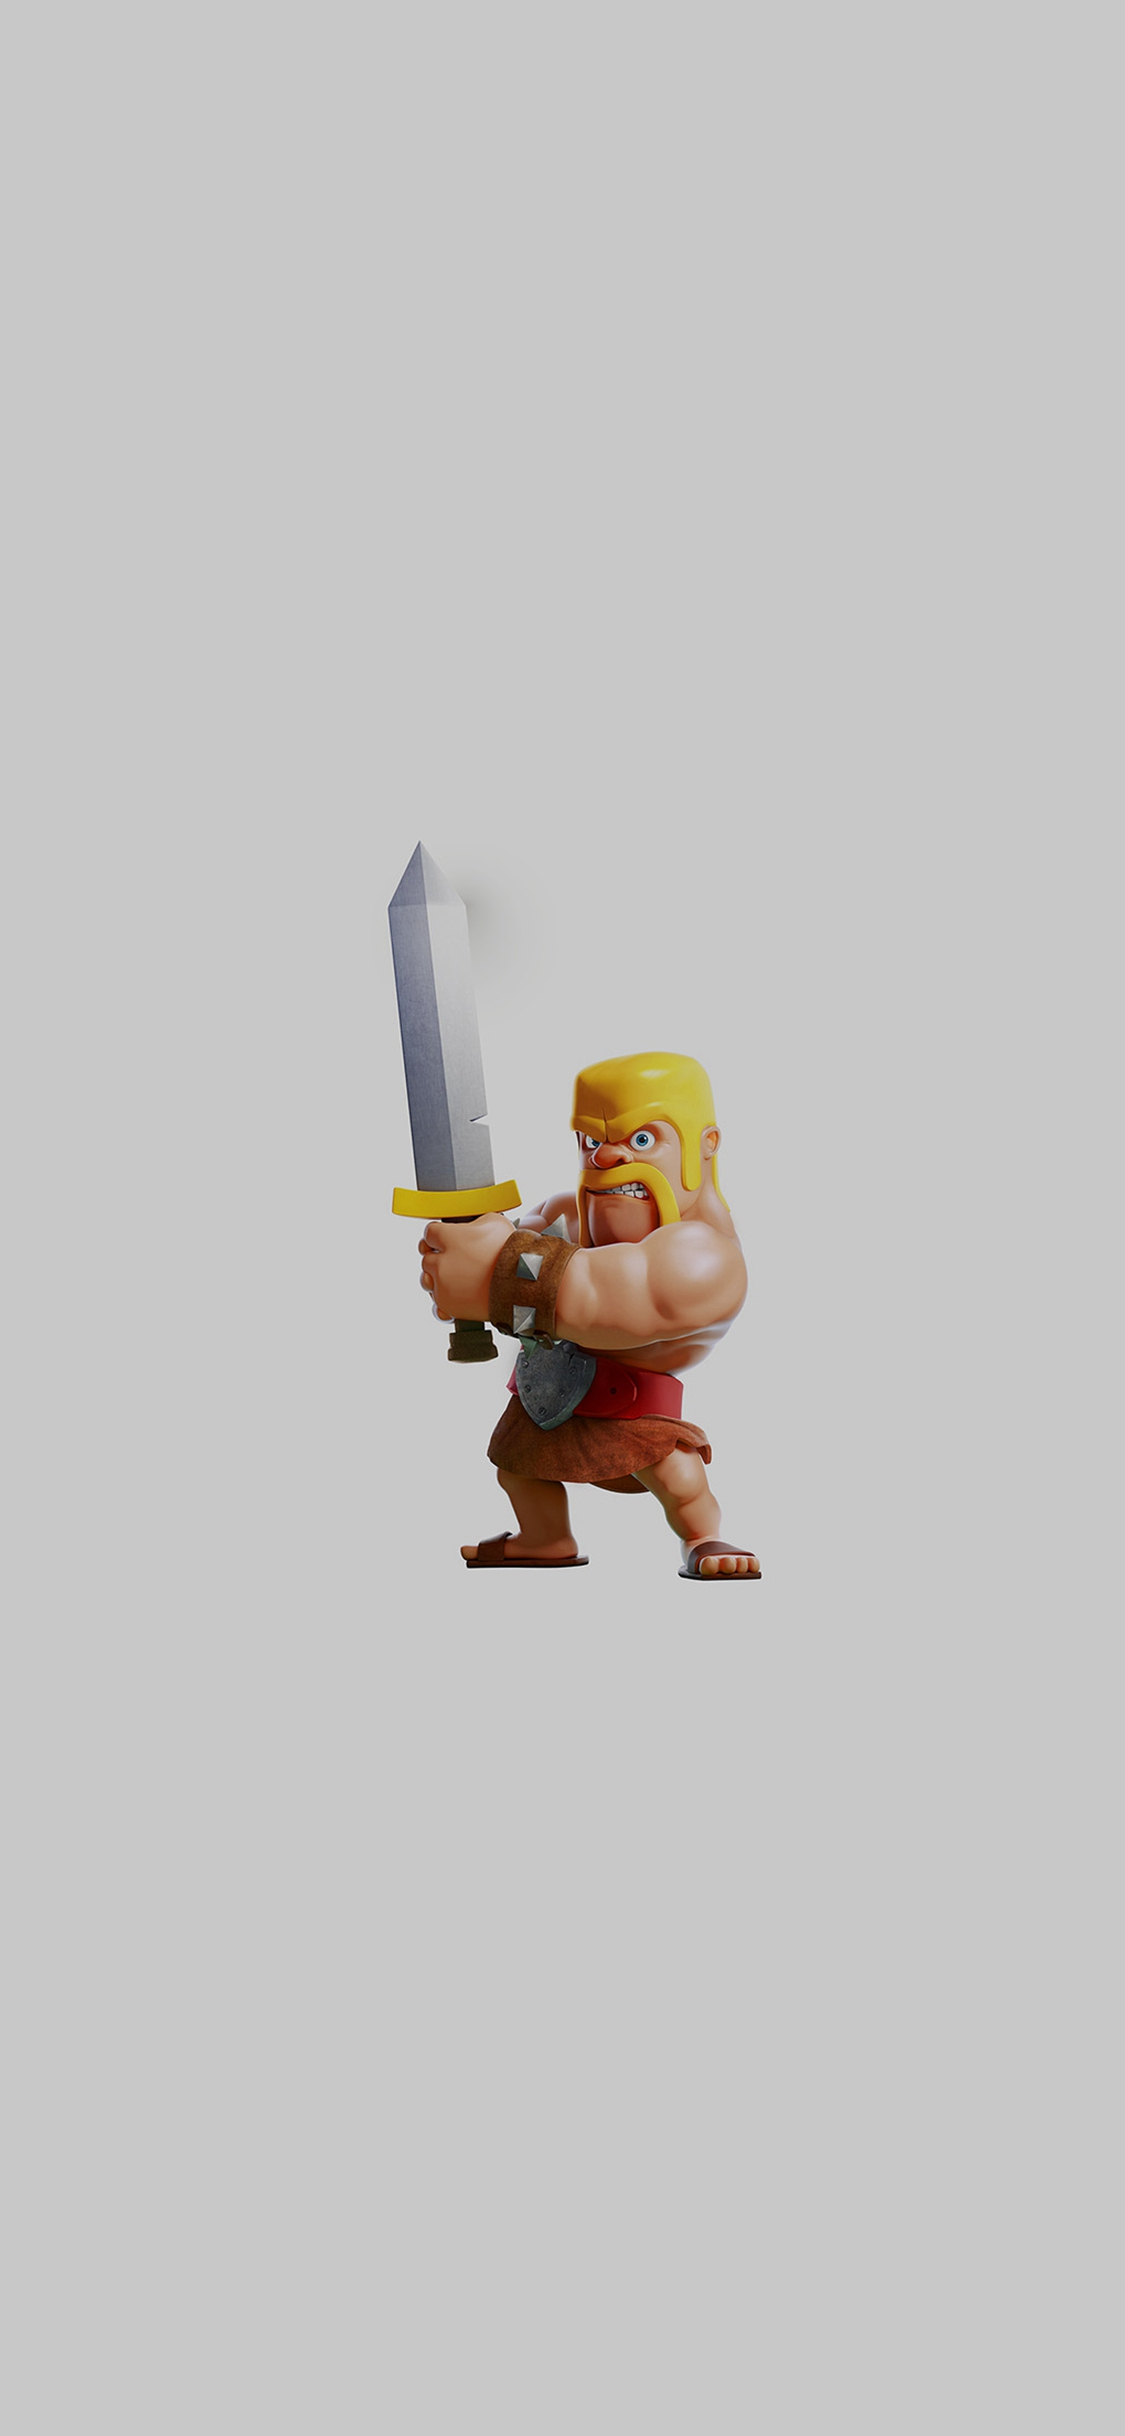 Barbarian Clash Of Clans Art Dark Game Iphone X Wallpapers Free